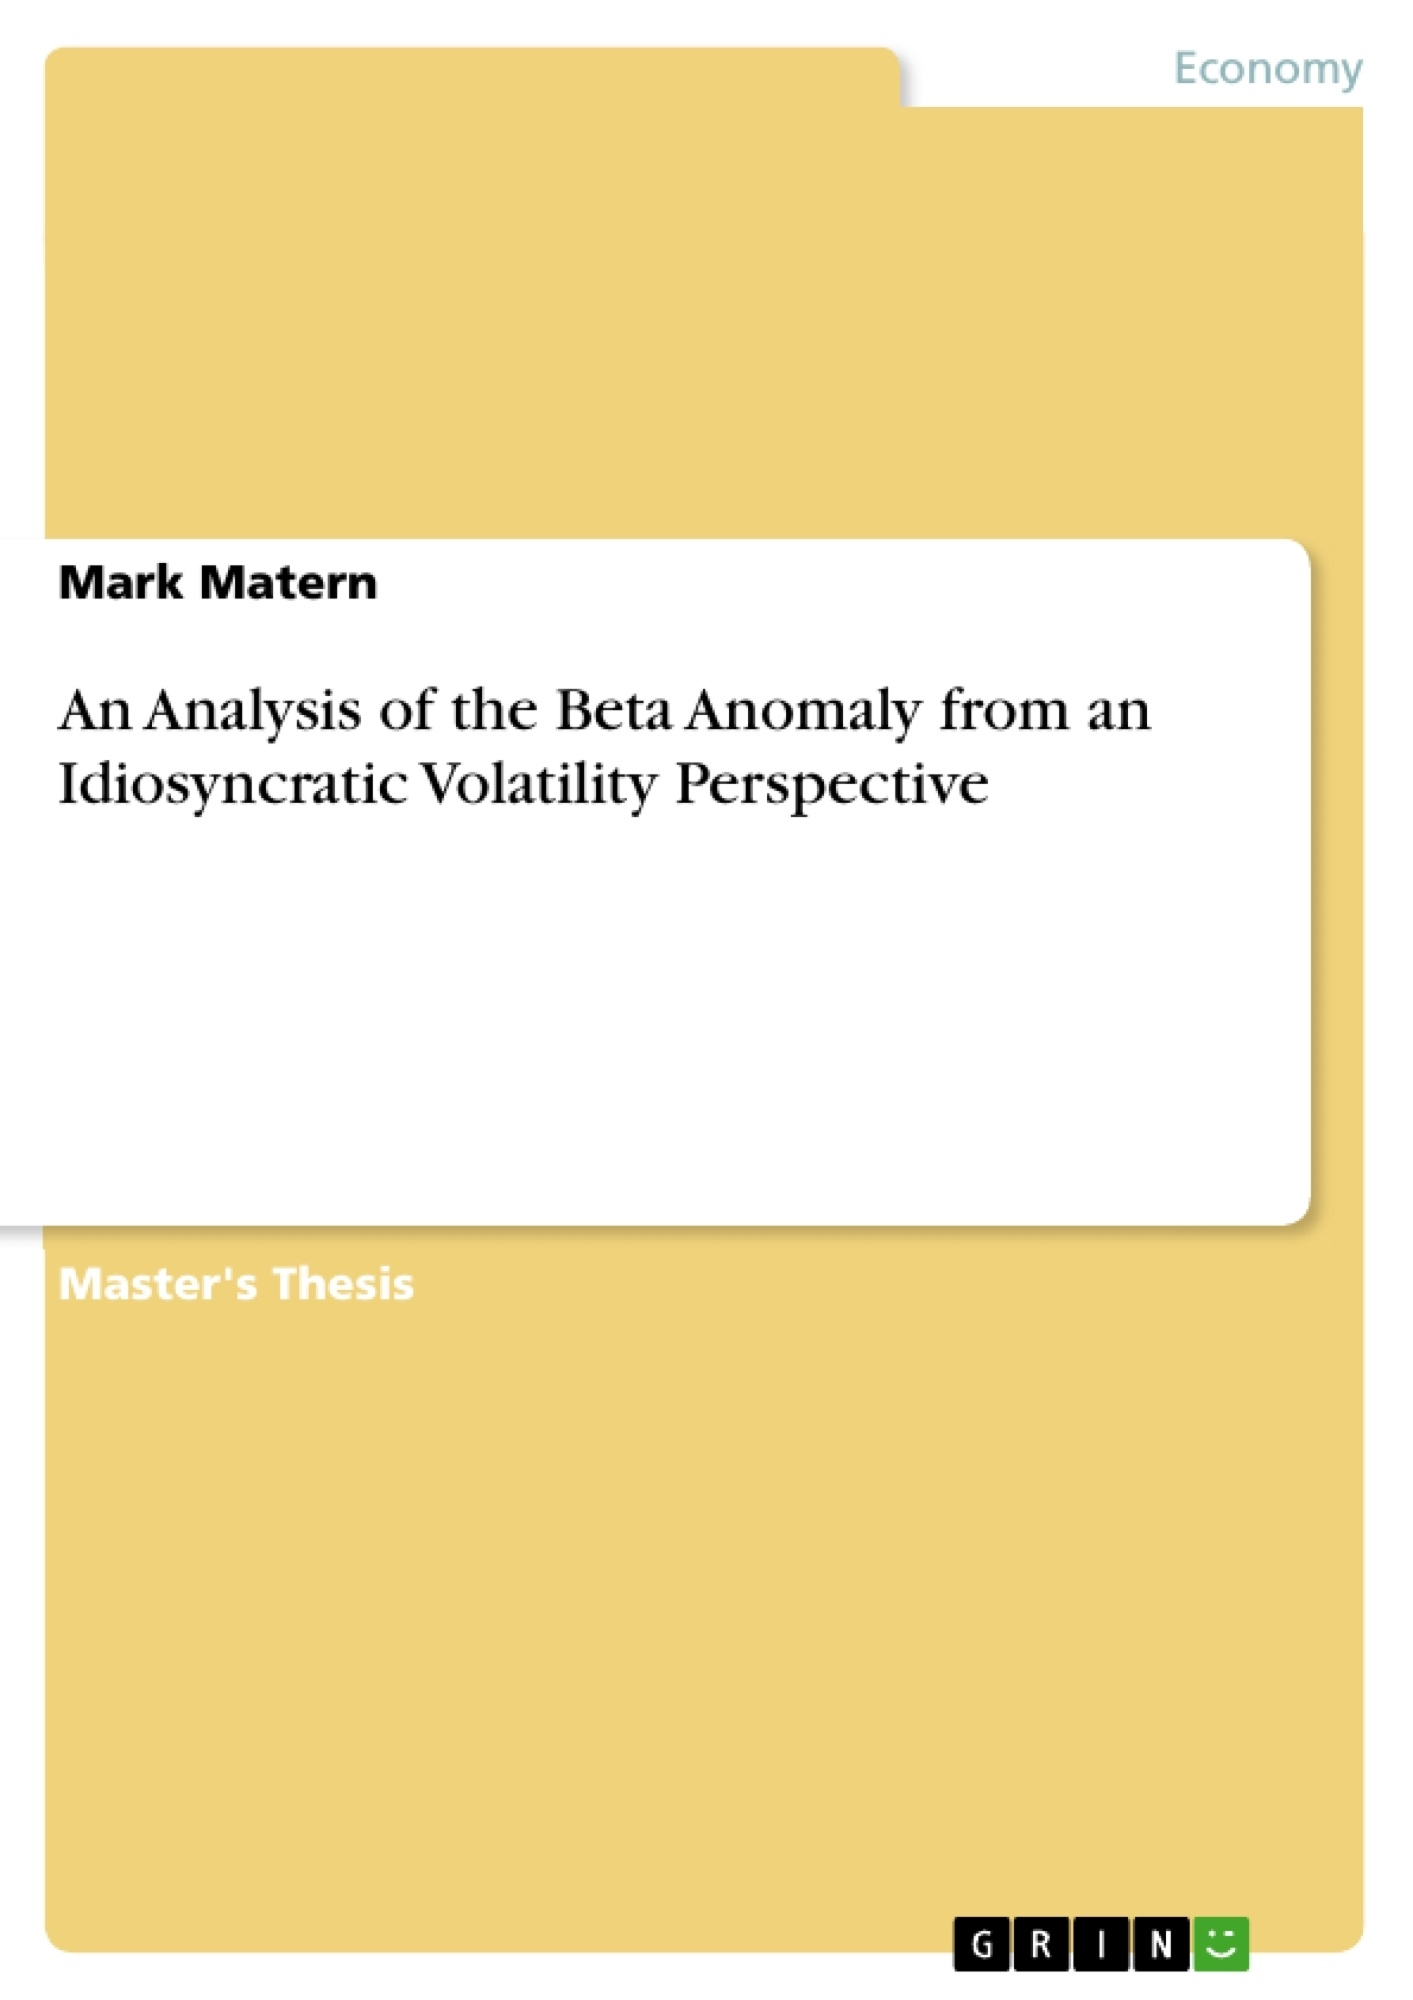 Title: An Analysis of the Beta Anomaly from an Idiosyncratic Volatility Perspective